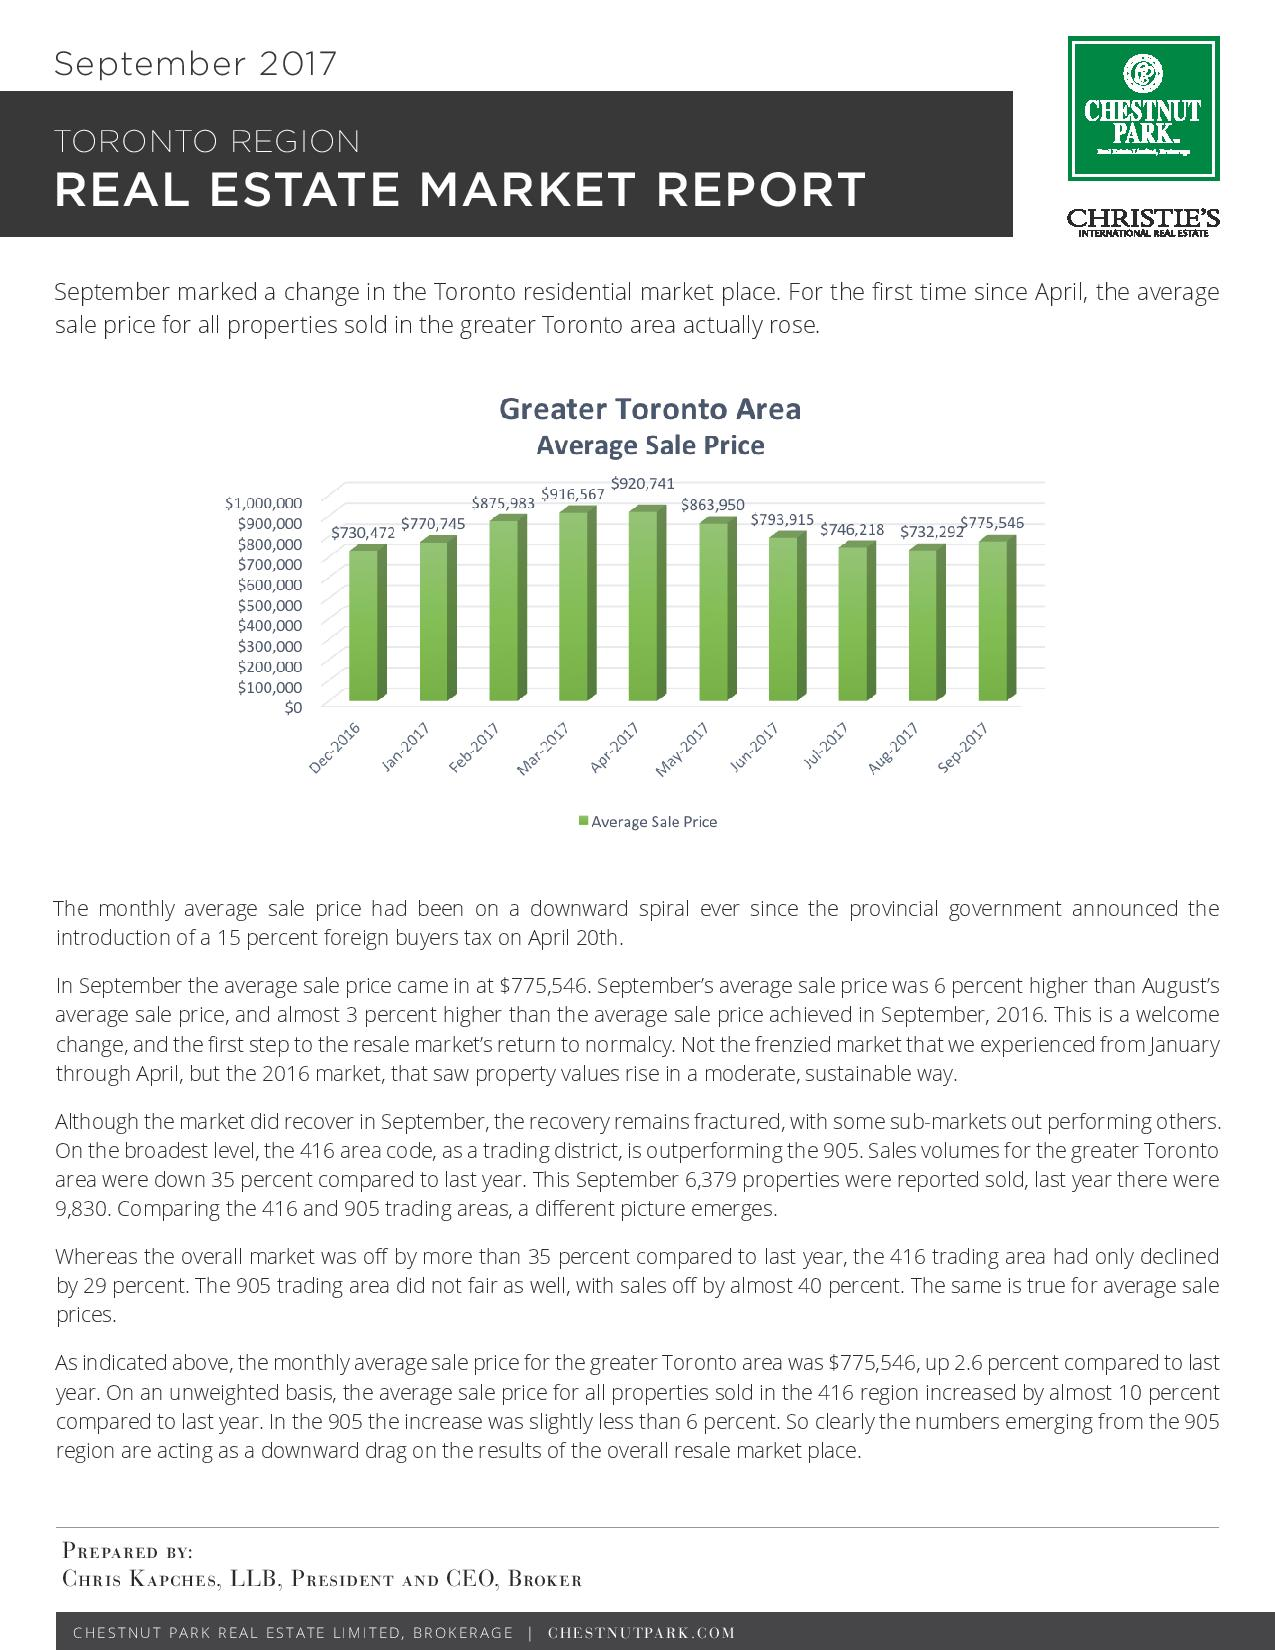 Toronto Real Estate Market Update Sep 2017 report jpg.jpg